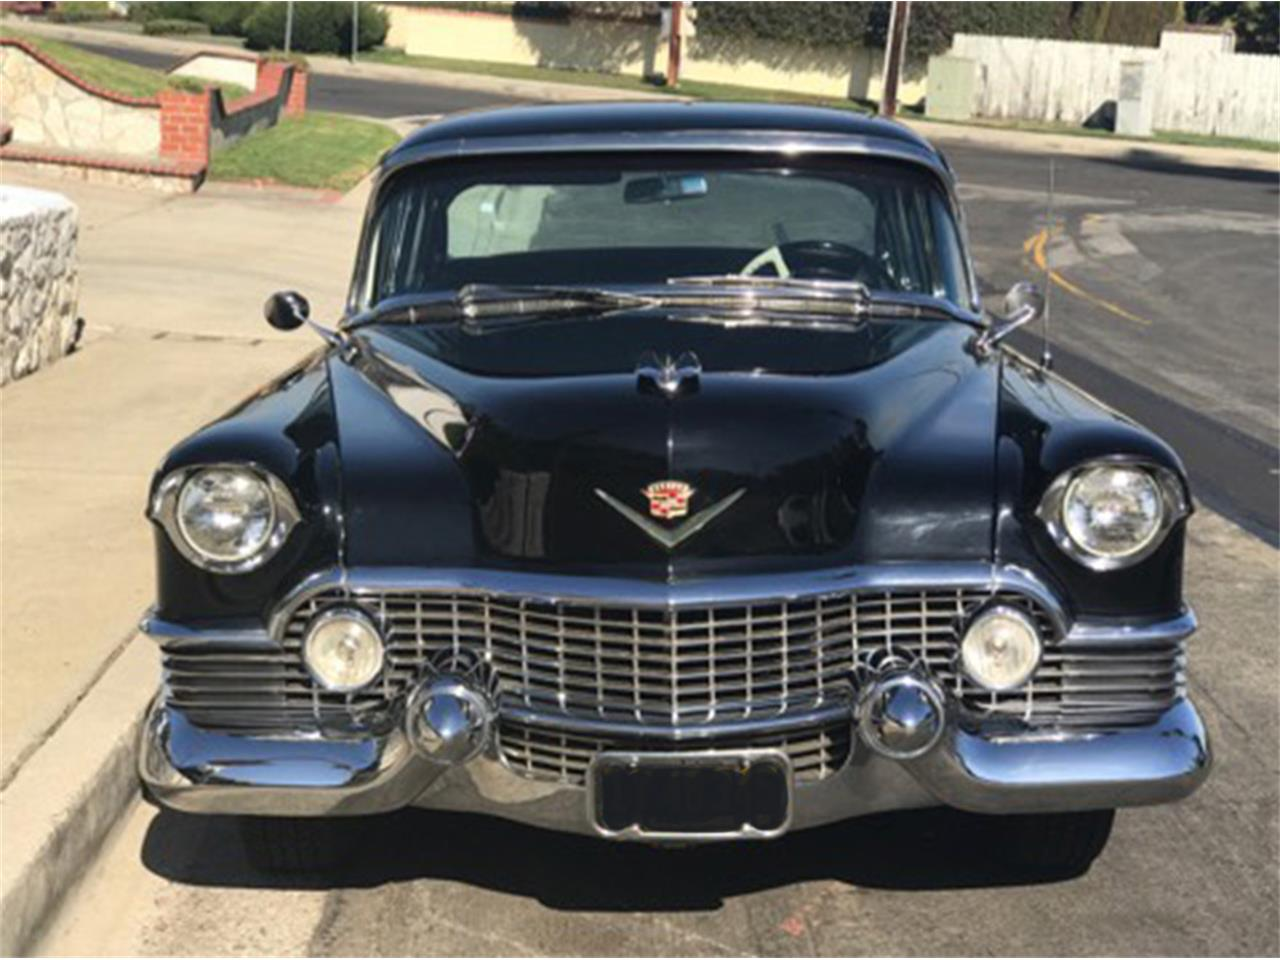 1954 Cadillac Fleetwood for sale in West Hollywood, CA